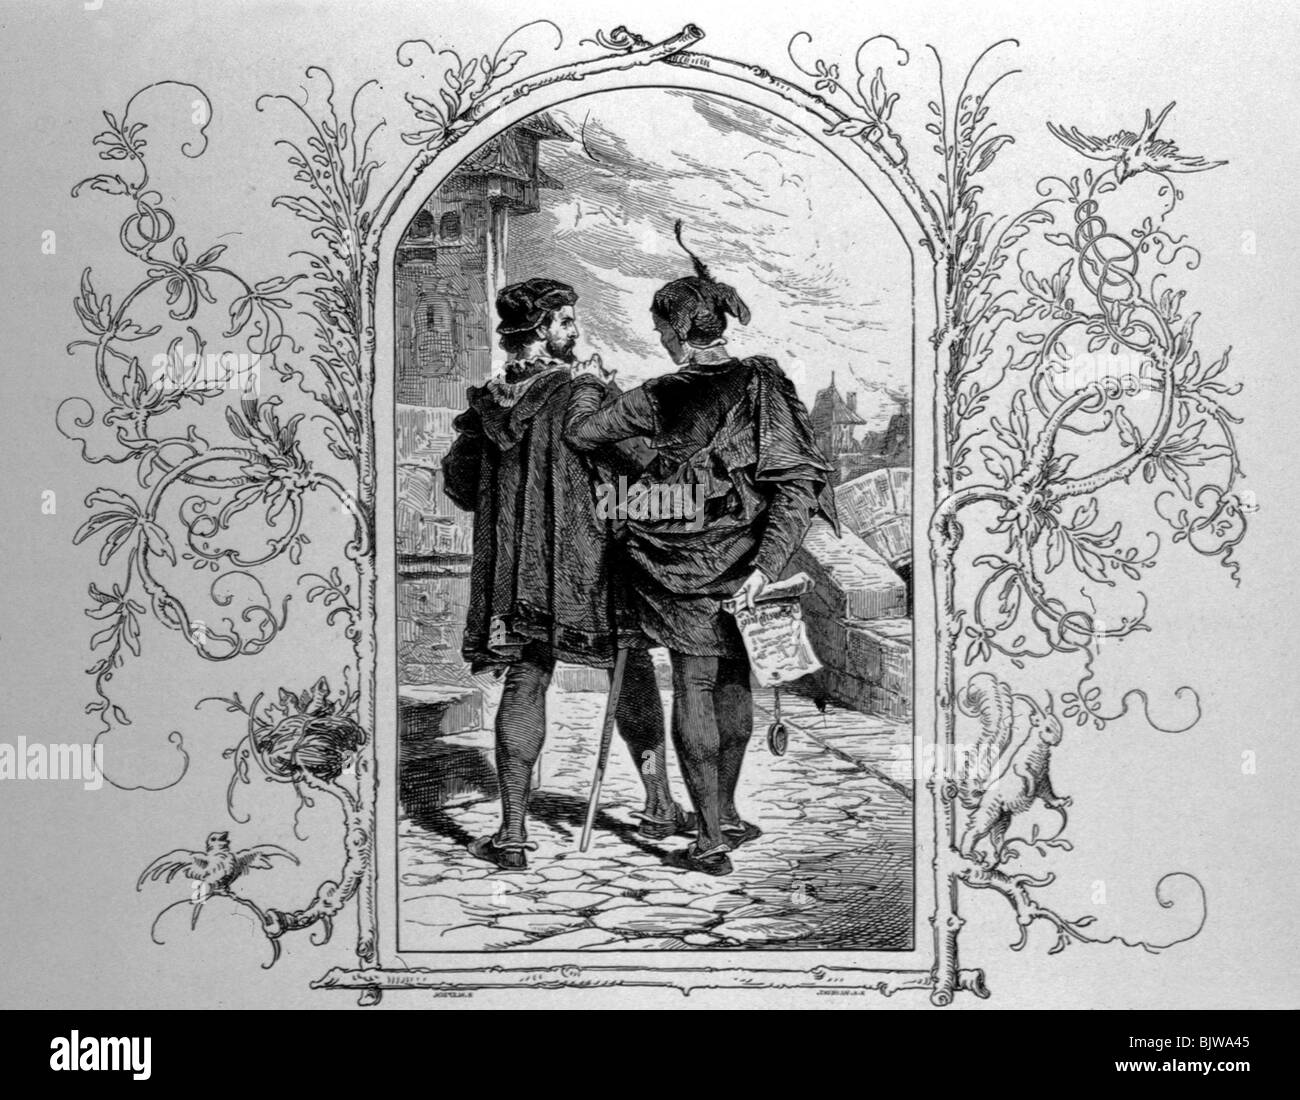 literature, 'Faust I', 12th scene 'Garden', Faust and Mephistopheles, wood engraving by W. Hecht, - Stock Image